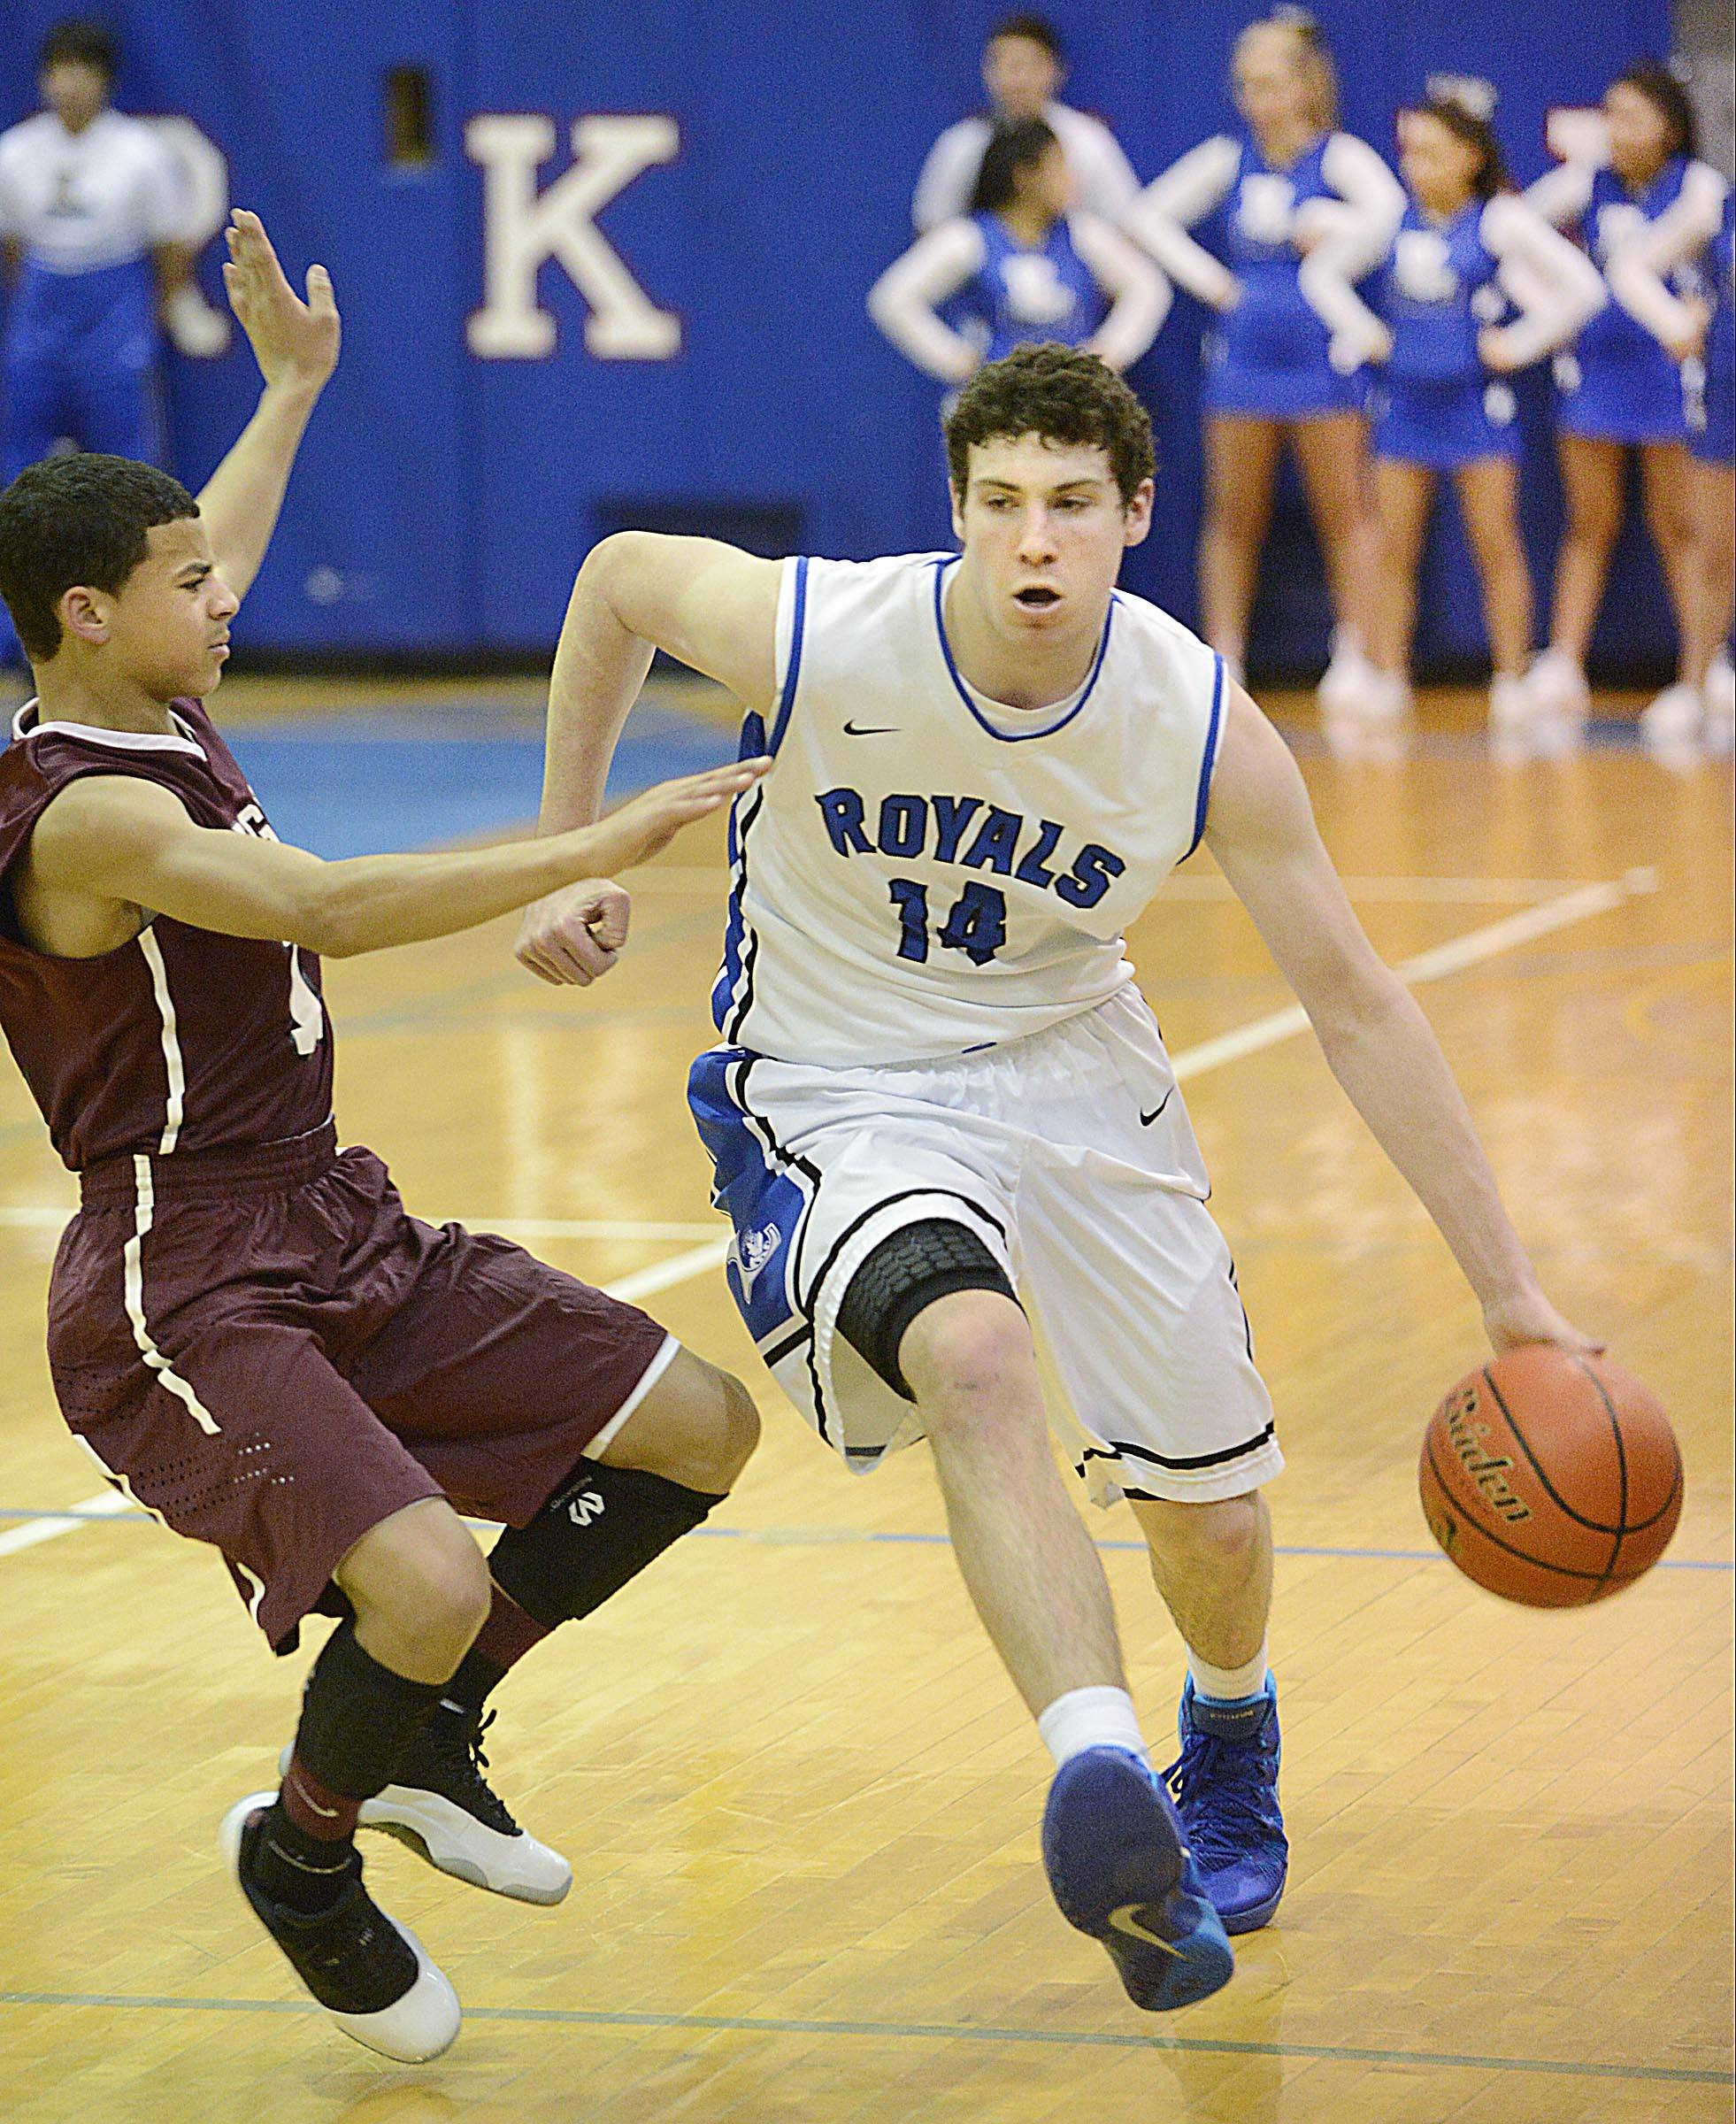 Larkin's Drew Jones, right, works against Elgin earlier this season. The Royals host Neuqua Valley Friday night in the Upstate Eight Conference first-place crossover game.